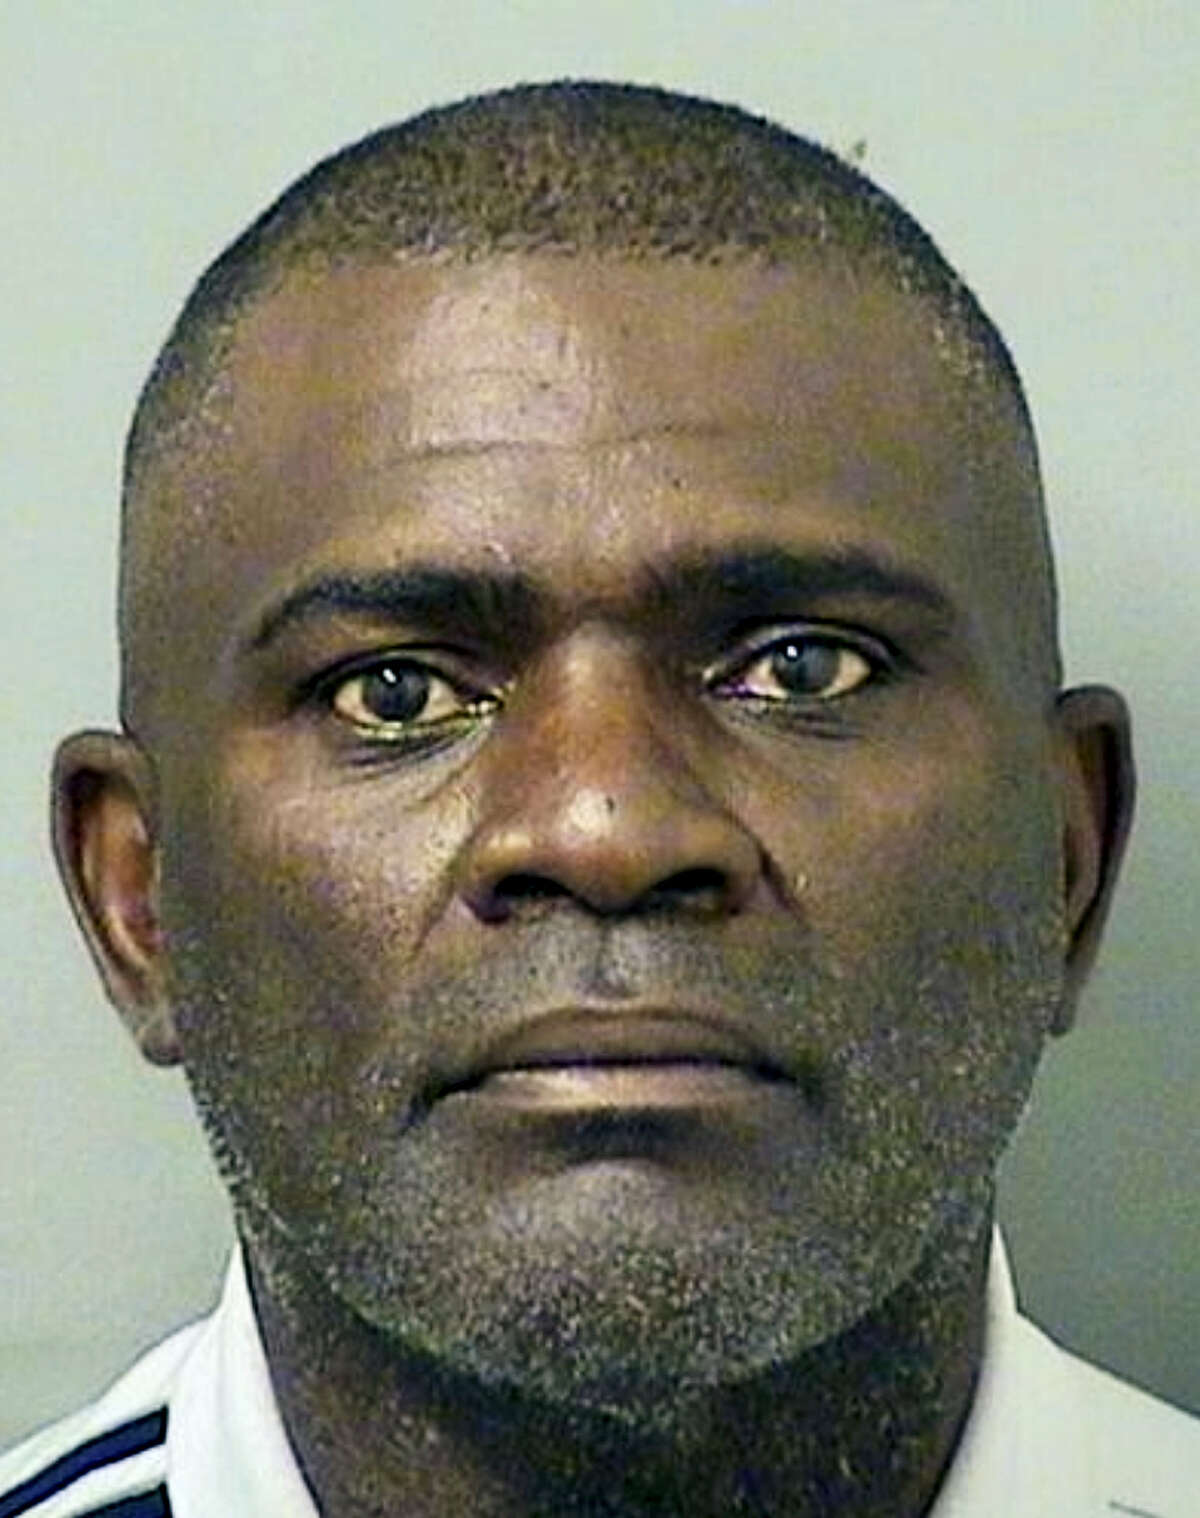 This booking photo provided by the Palm Beach County Sheriff's Department shows ex-NFL football player Lawrence Taylor, who was arrested Friday on a DUI charge.